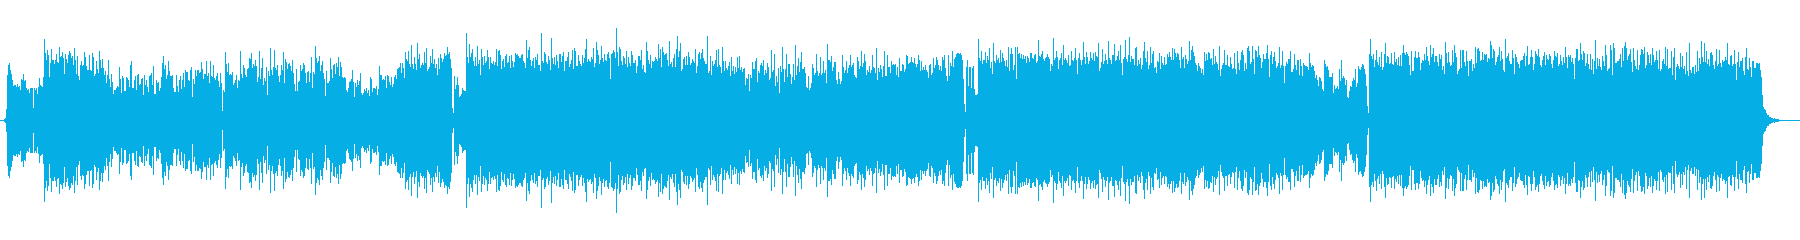 Japanese-style rock sung by the shakuhachi's reproduced waveform